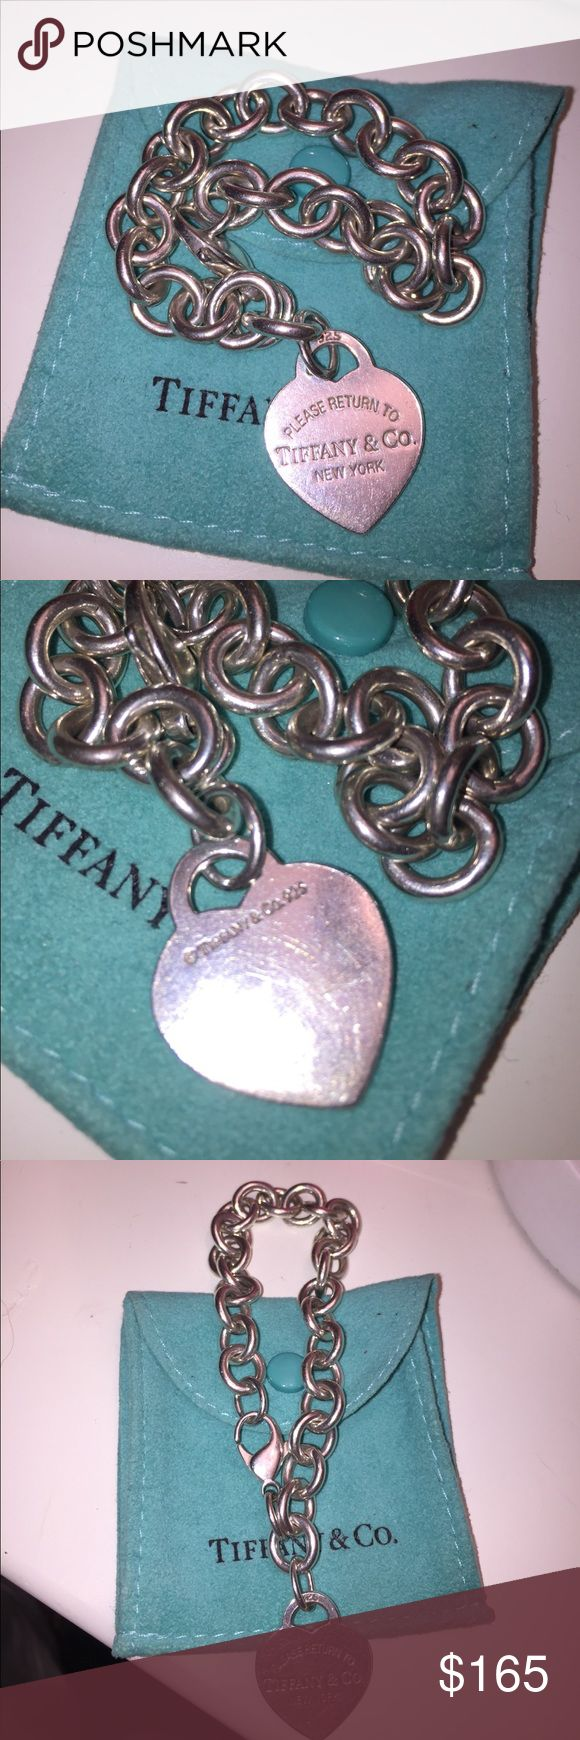 Tiffany and Co. Charm bracelet with heart Sterling silver charm bracelet links with return to Tiffany and Co. Engraved heart Tiffany & Co. Jewelry Bracelets